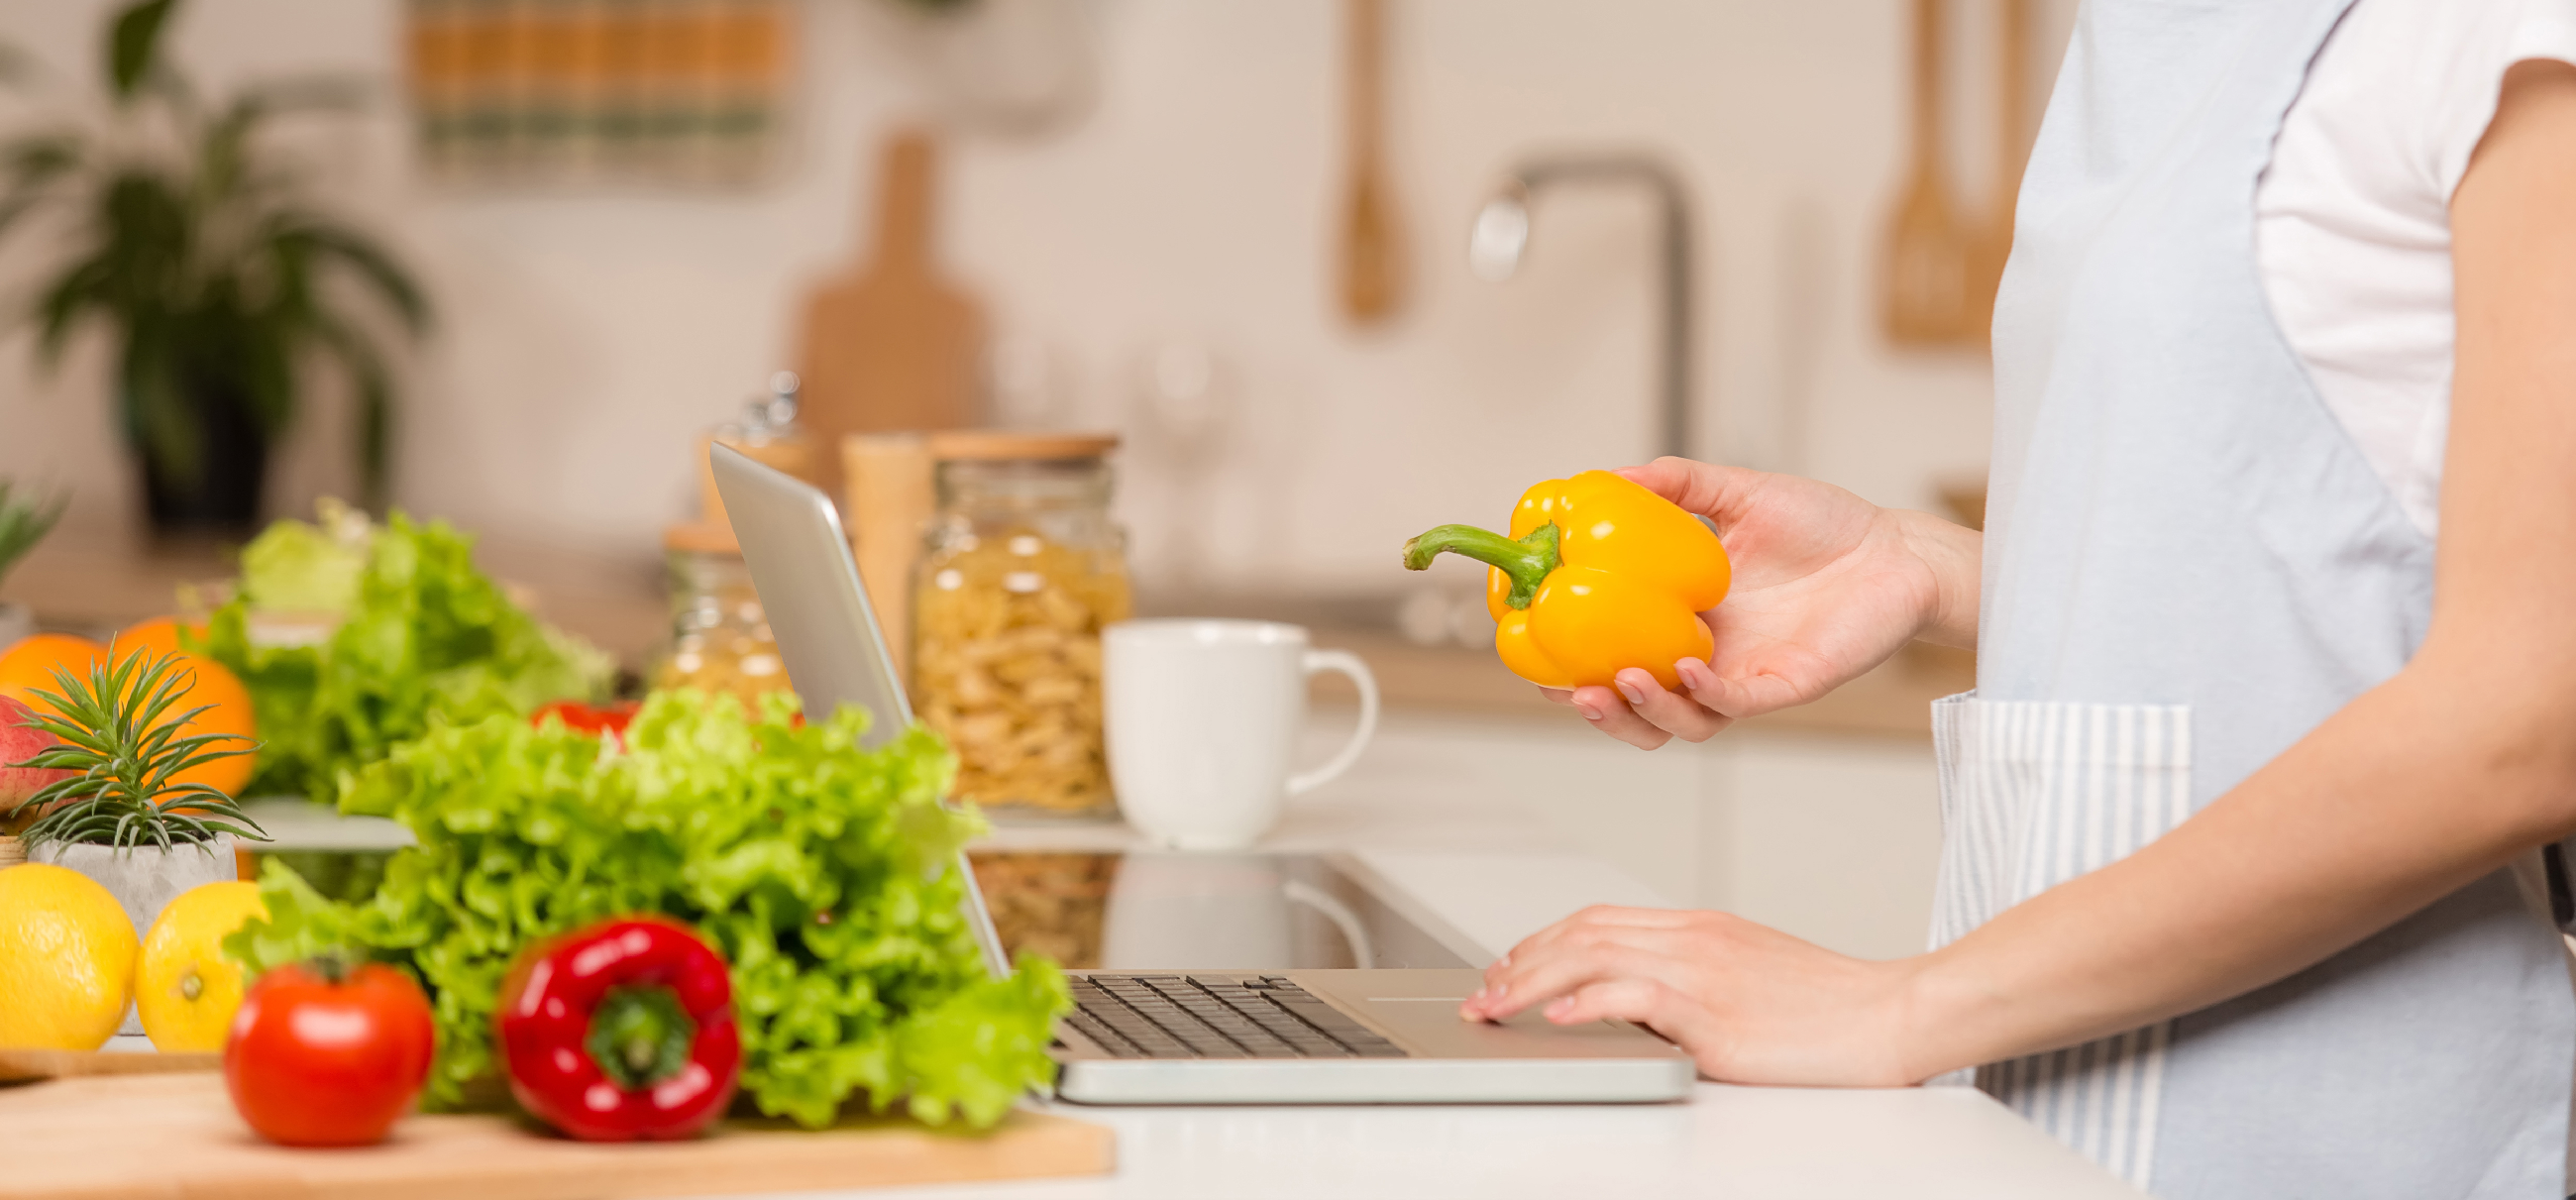 photo of woman in kitchen looking up recipes on laptop